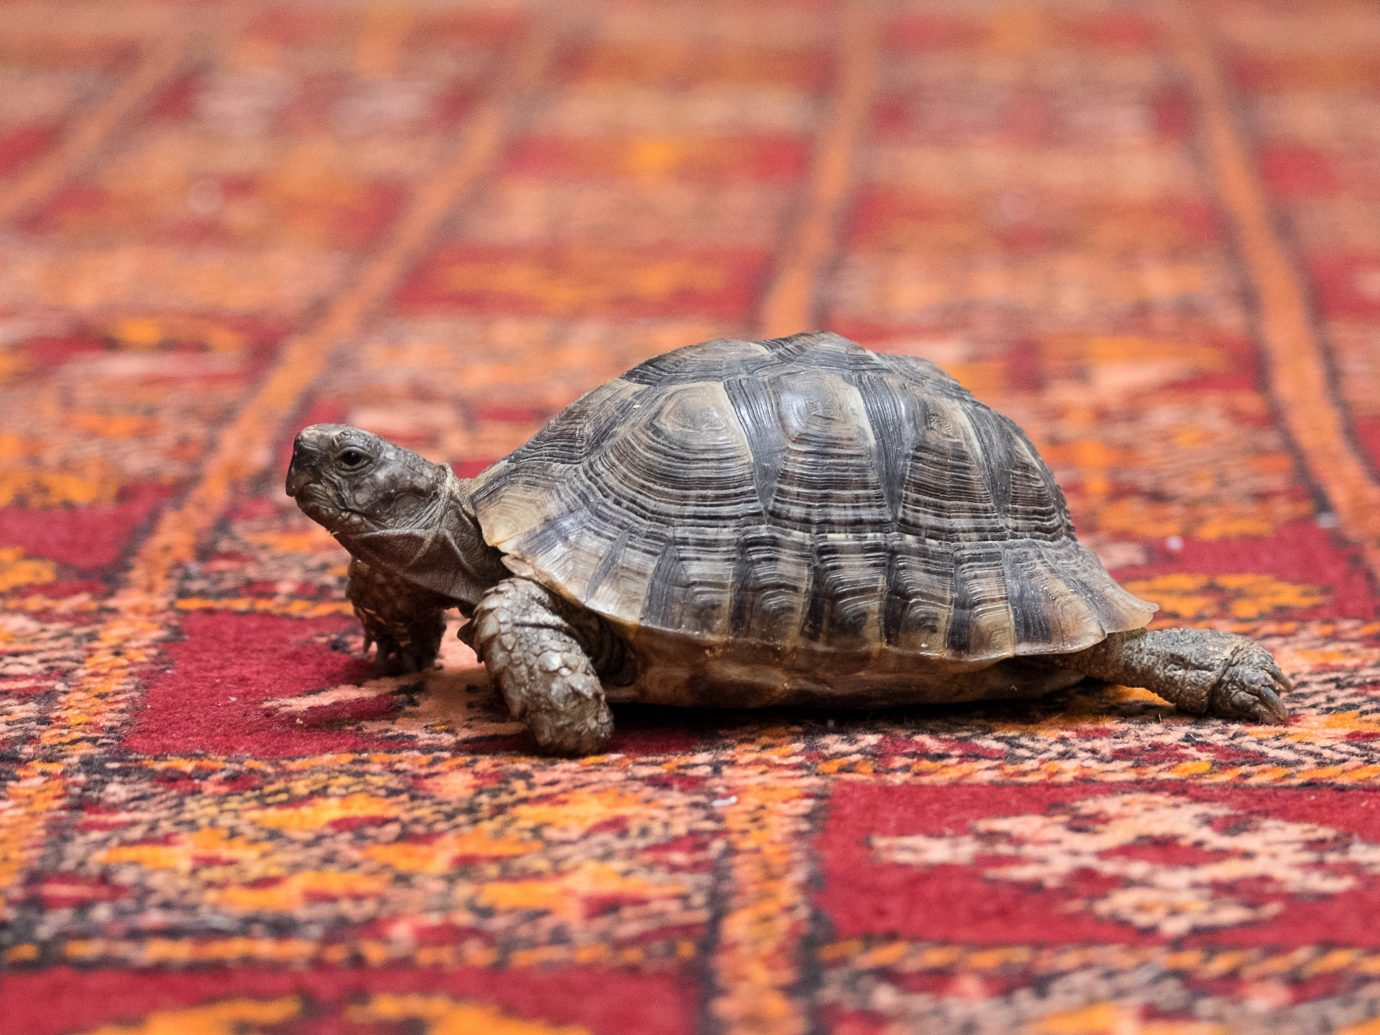 Hotels reptile animal floor turtle sitting vertebrate tortoise emydidae fauna box turtle close up colorful colored